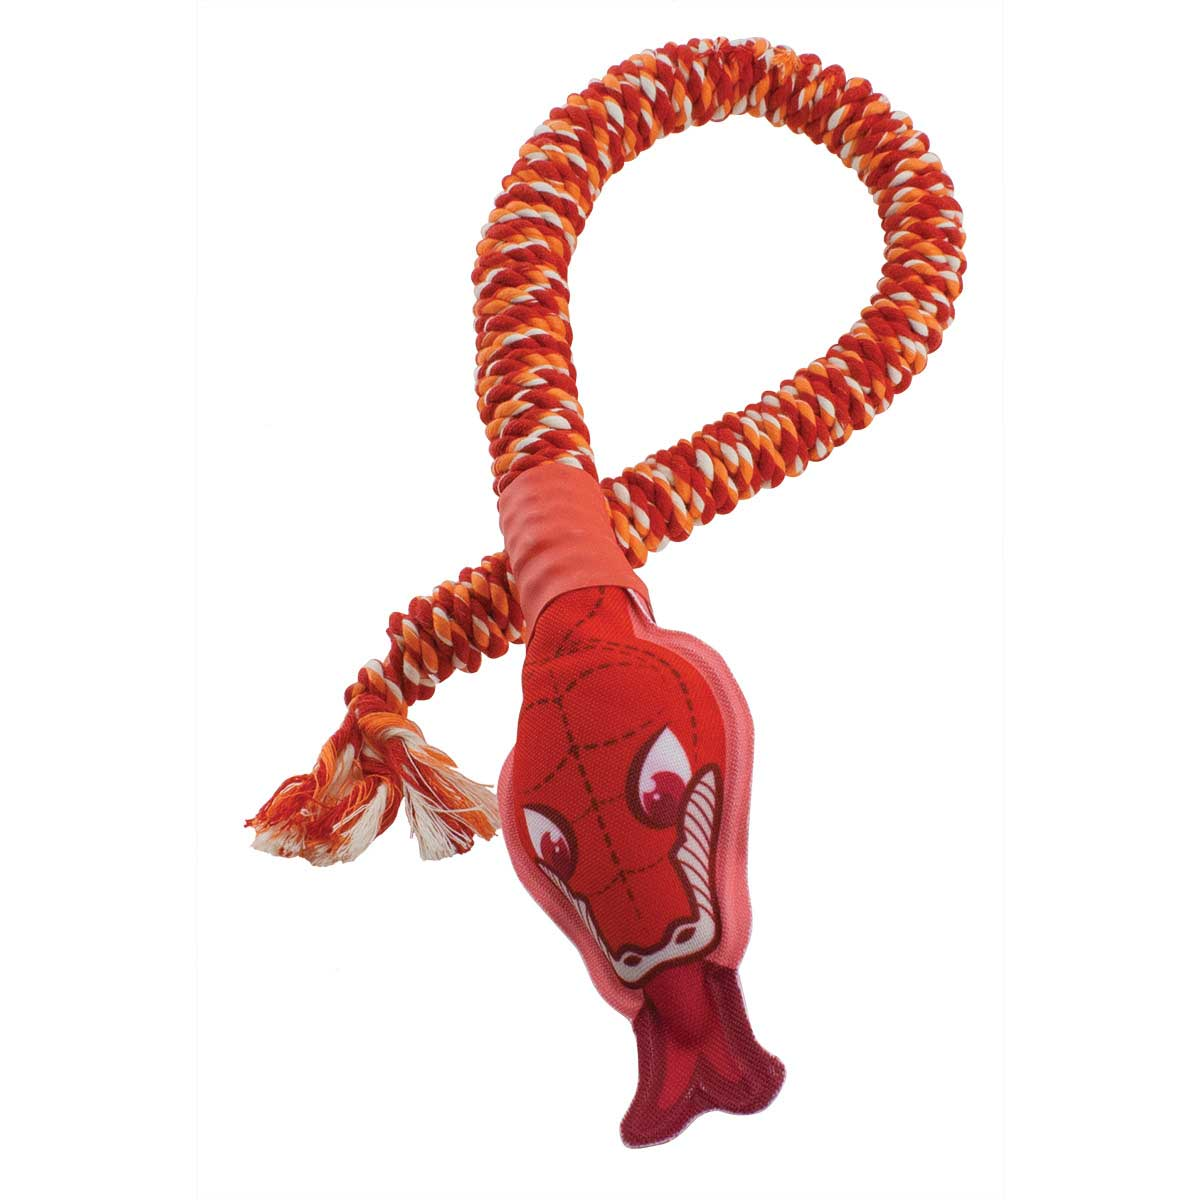 Mammoth Small 28 inch Snakebiter With Squeaky Head Dog Toy